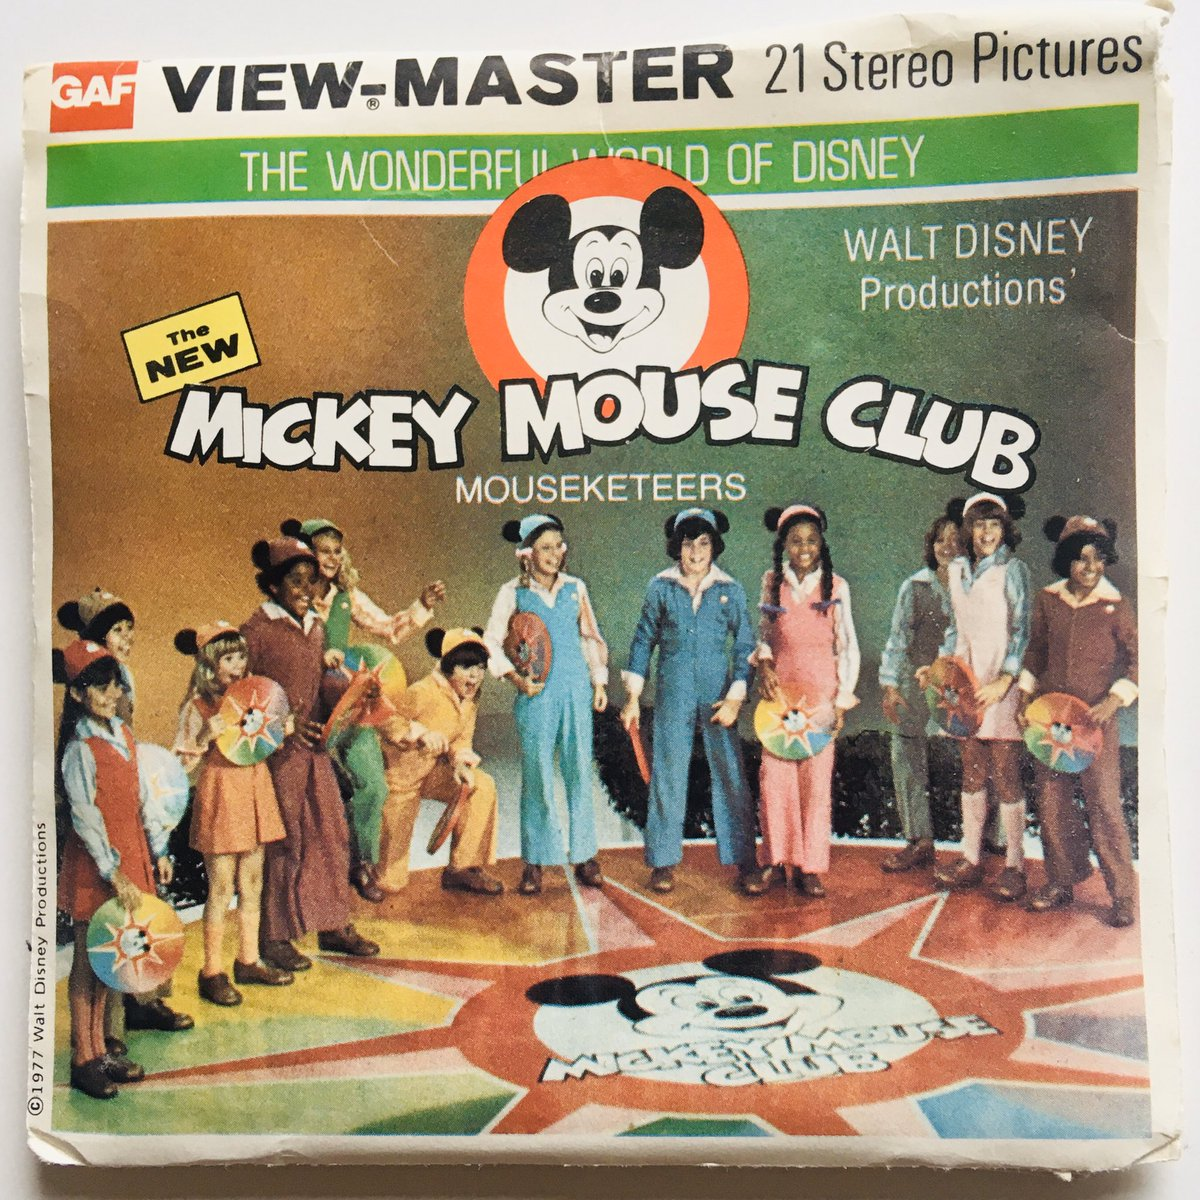 I REALLY hope that Disney+ has the 1970s Mickey Mouse Club. If not I always have the View-Master reels... Please dig deep into the vaults Disney!   #ViewMaster #VintageToys #MickeyMouseClub #Disney #DisneyPlus #DisneyPlusUKpic.twitter.com/tpibQlihjm